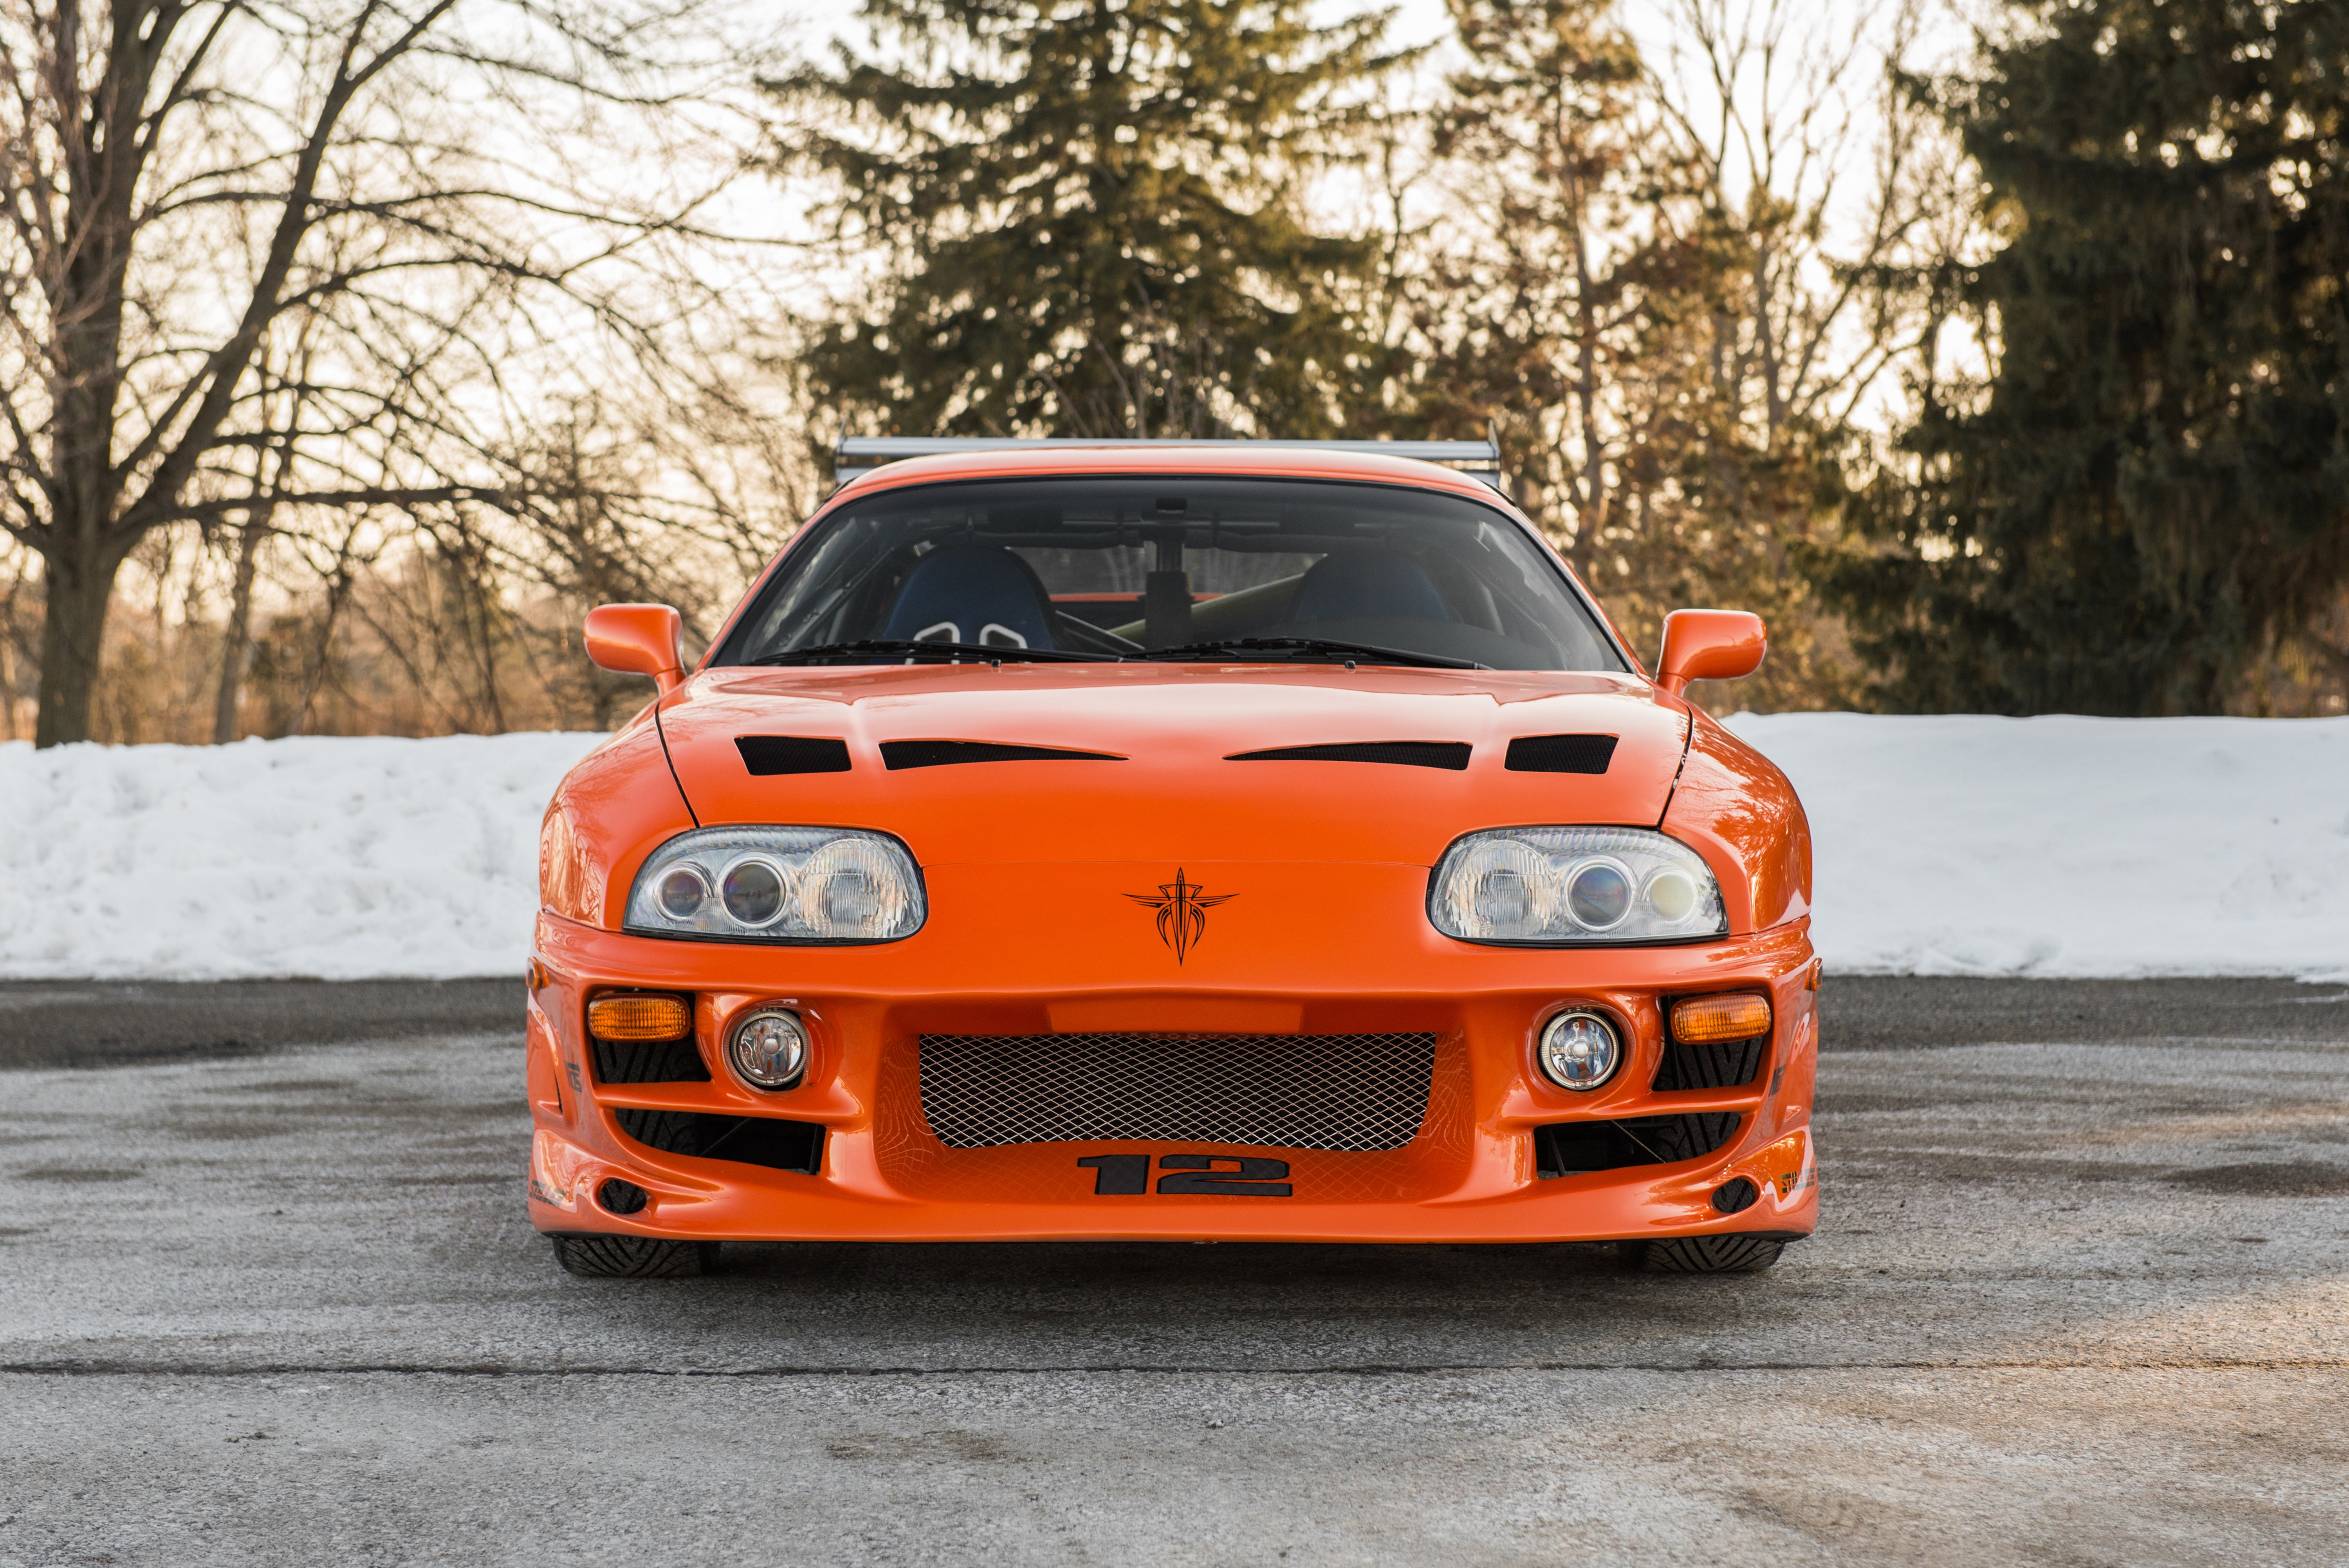 Toyota Supra The Fast and the Furious - 3369.1KB